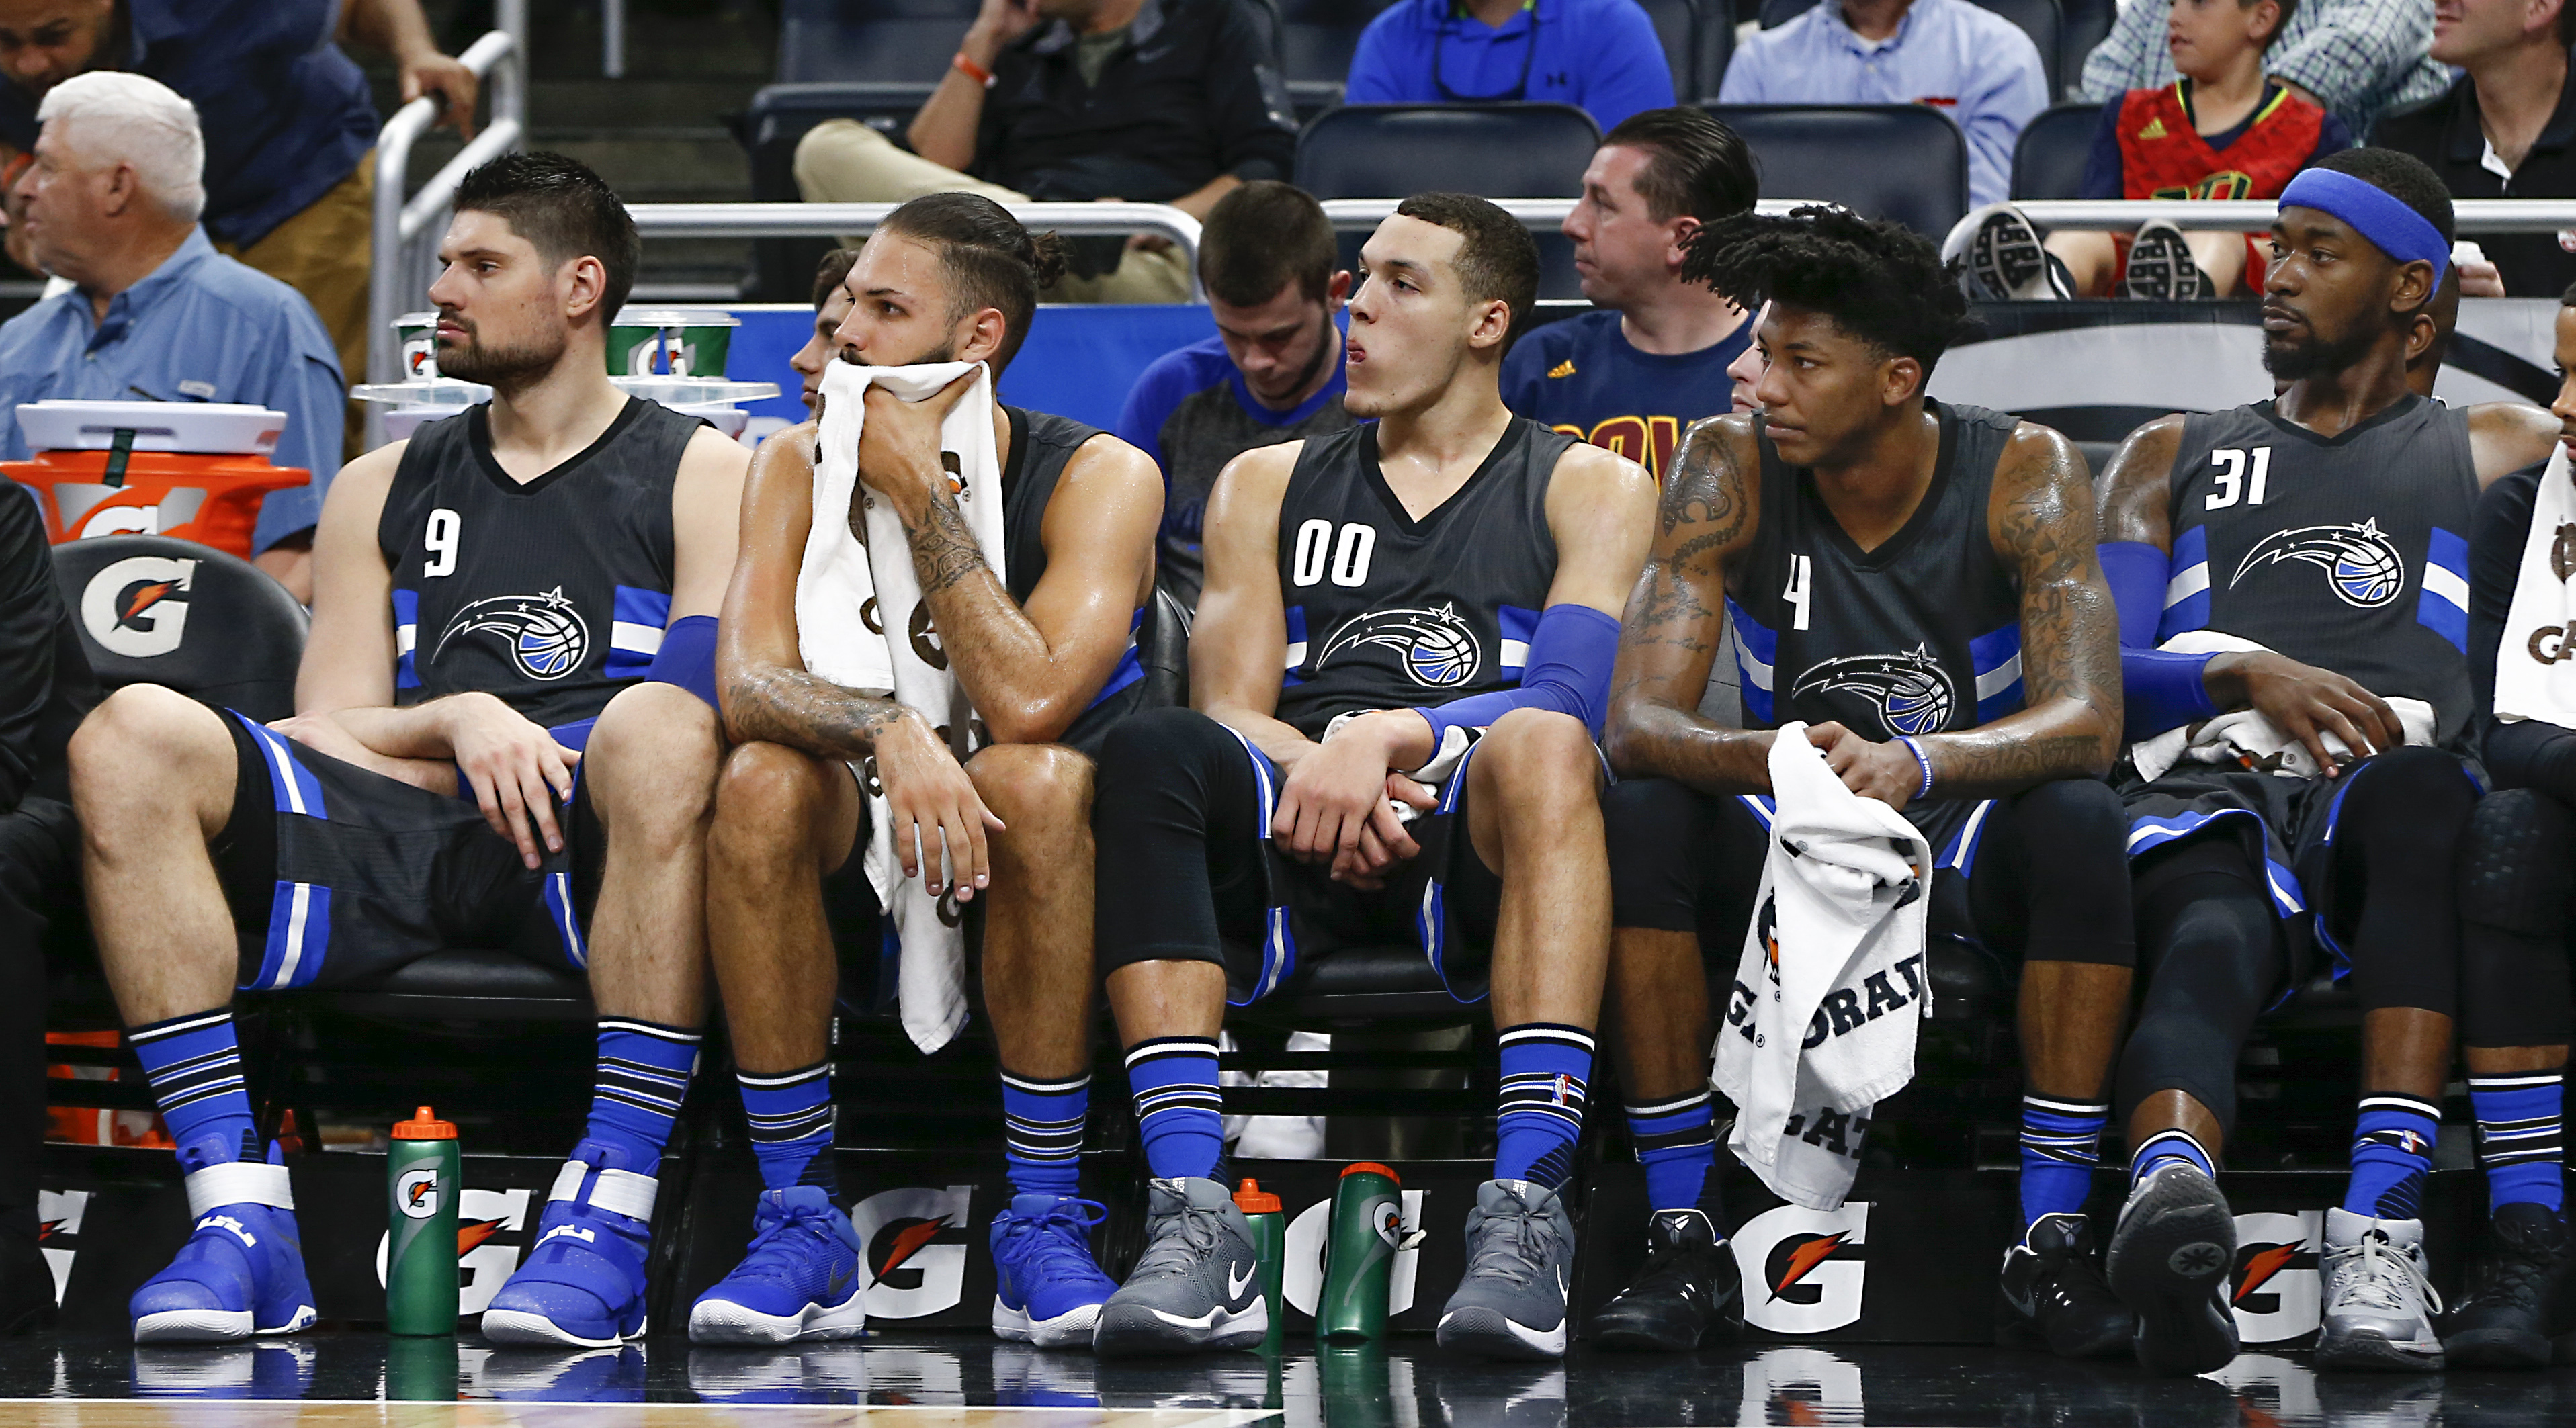 Orlando Magic 2017 Season Review: What Went Right -- Lessons learned for the future